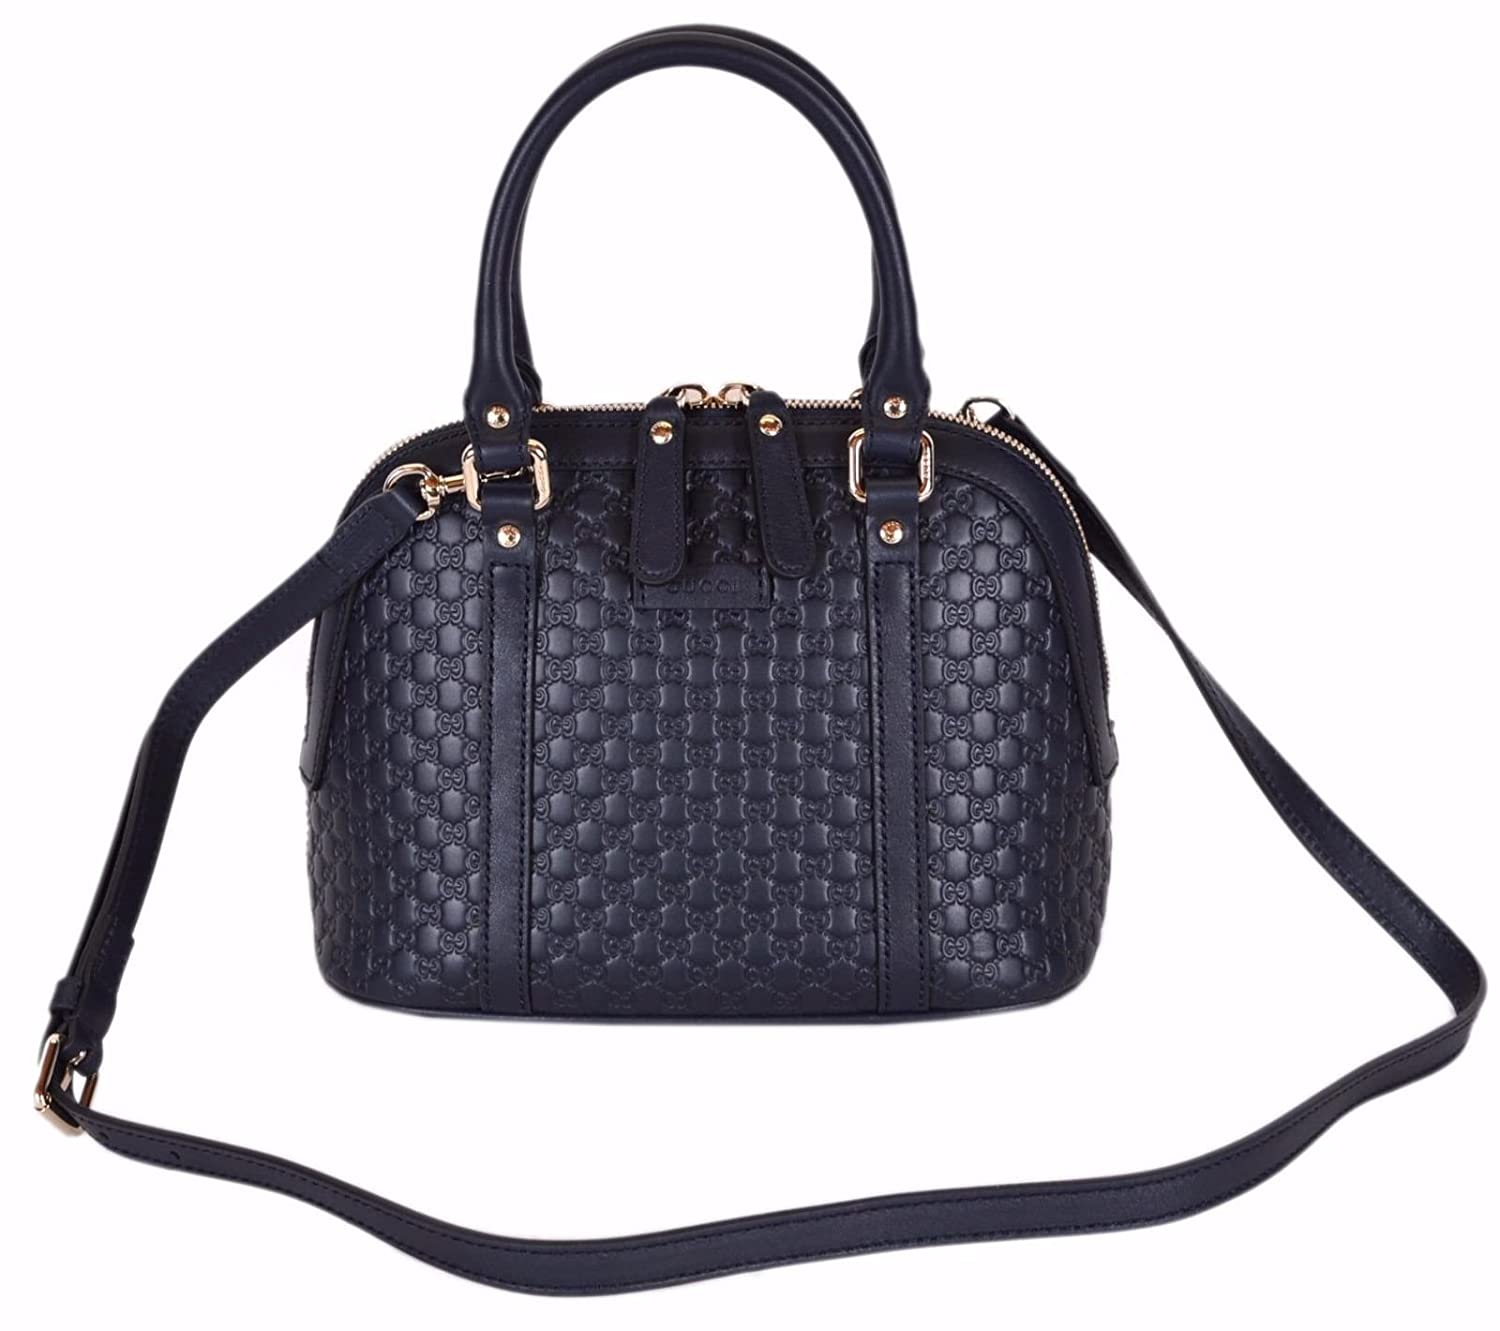 fb359e8e9ad Gucci Women s Micro GG Leather Convertible Mini Dome Purse (449654 Dark  Blue)  Amazon.ca  Shoes   Handbags